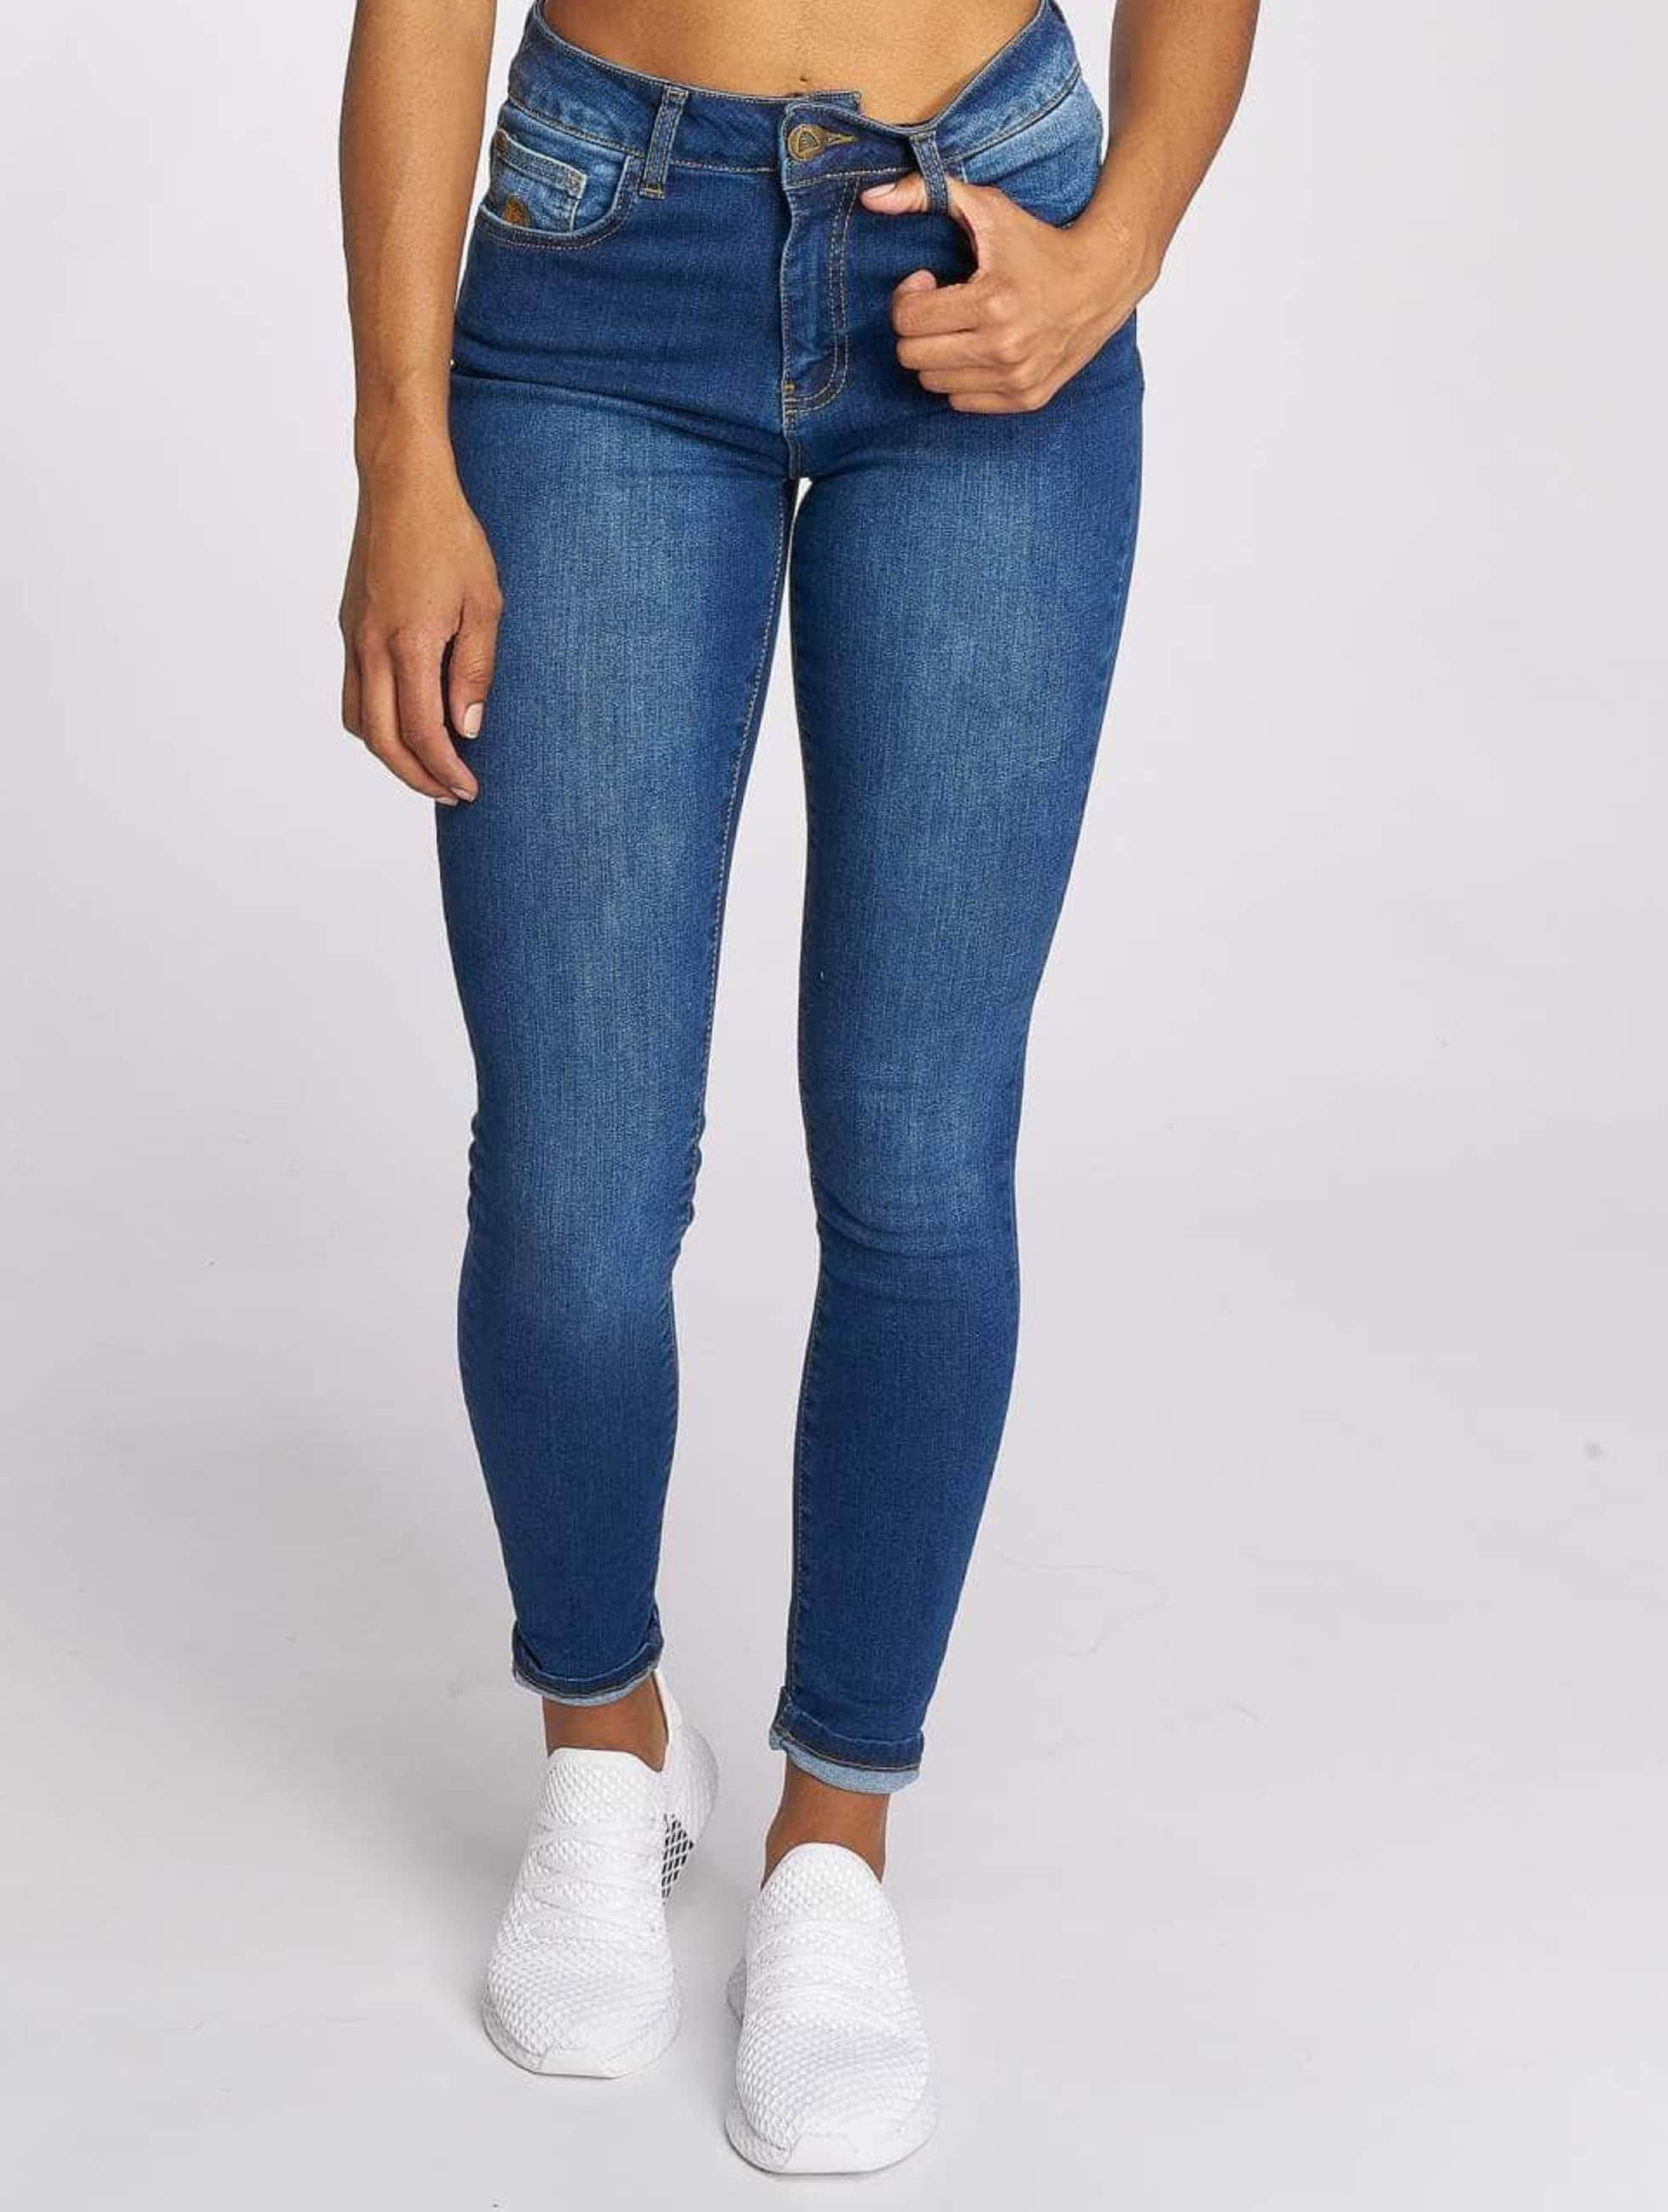 Just Rhyse / High Waisted Jeans Buttercup in blue W 29